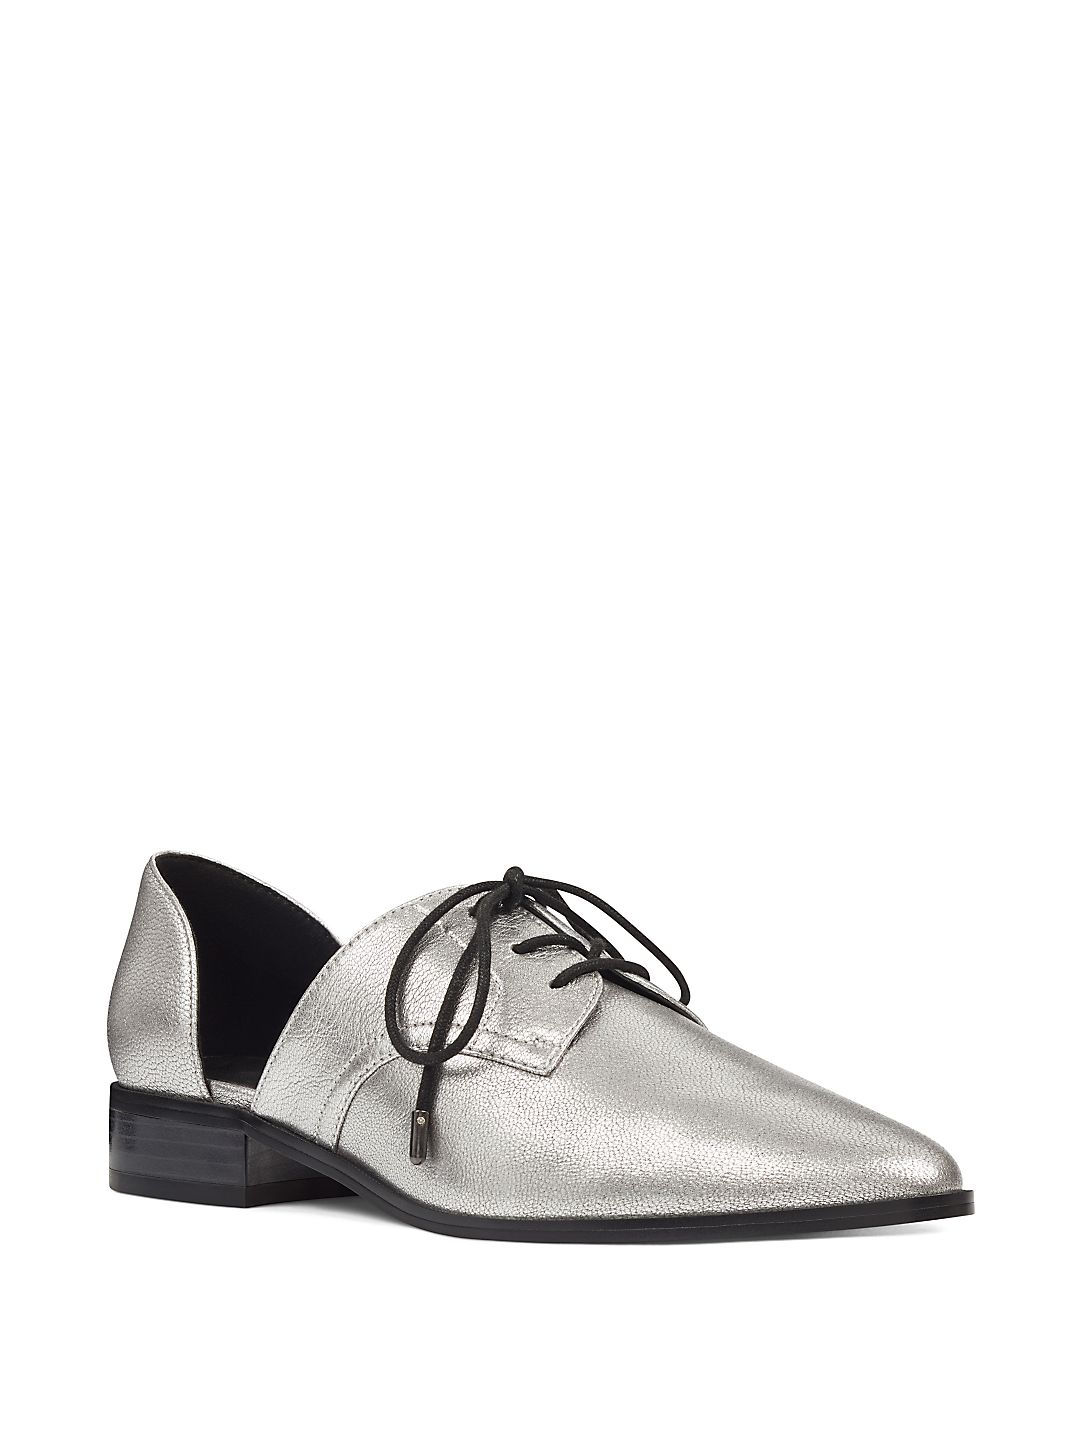 Watervelt Leather d'Orsay Oxfords